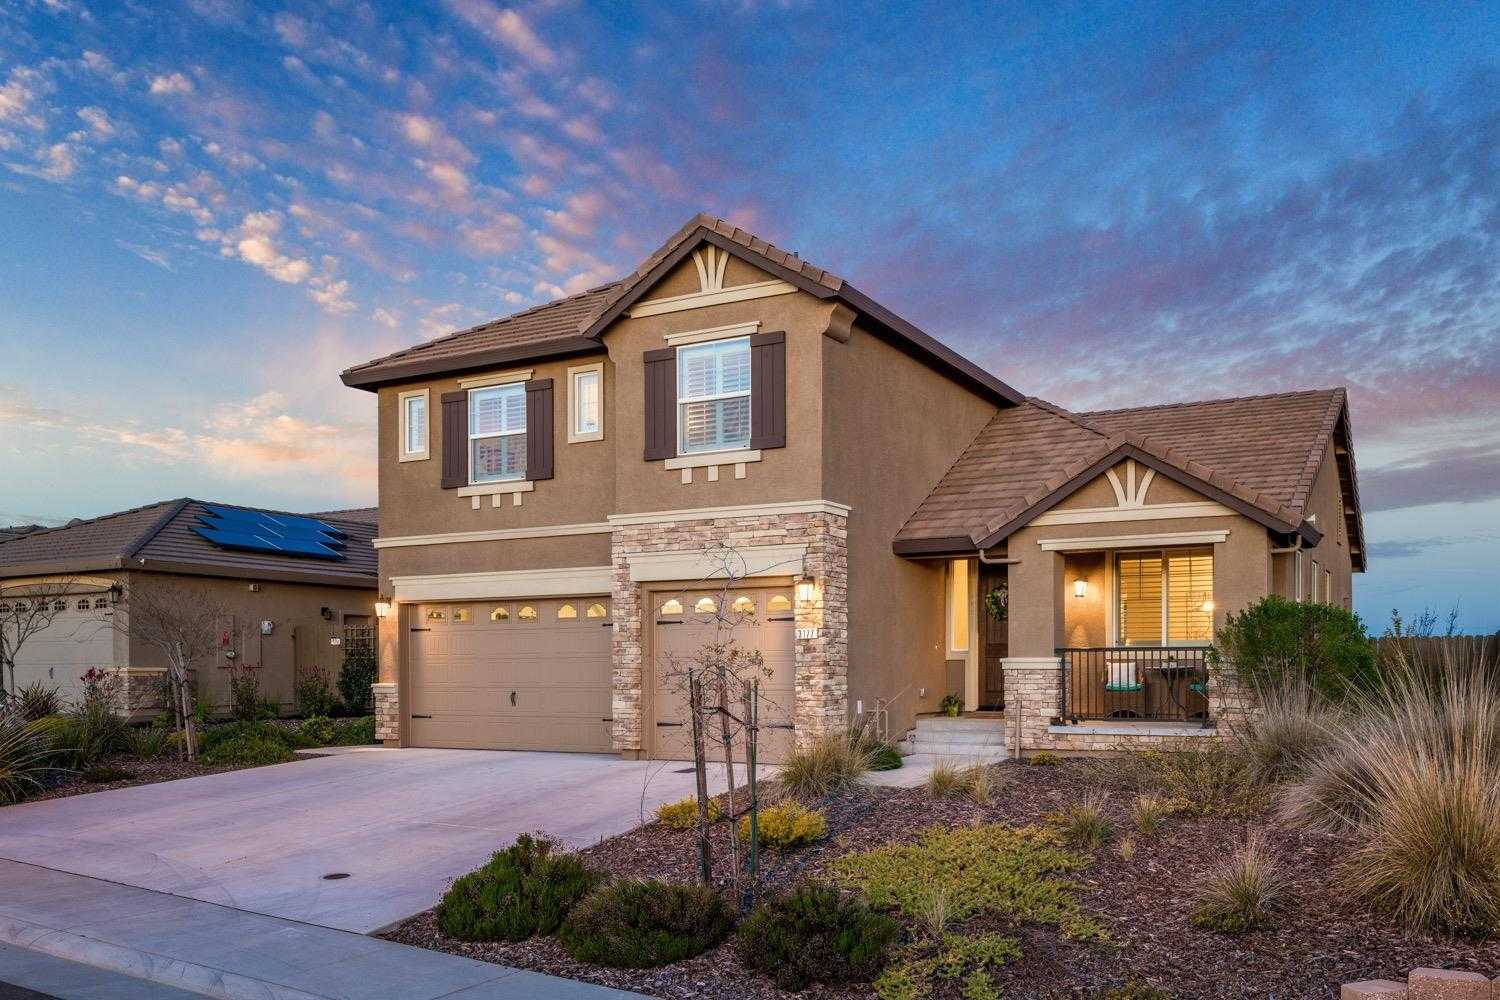 $698,000 - 5Br/3Ba -  for Sale in Terra Vista @ Stoneridge, Roseville